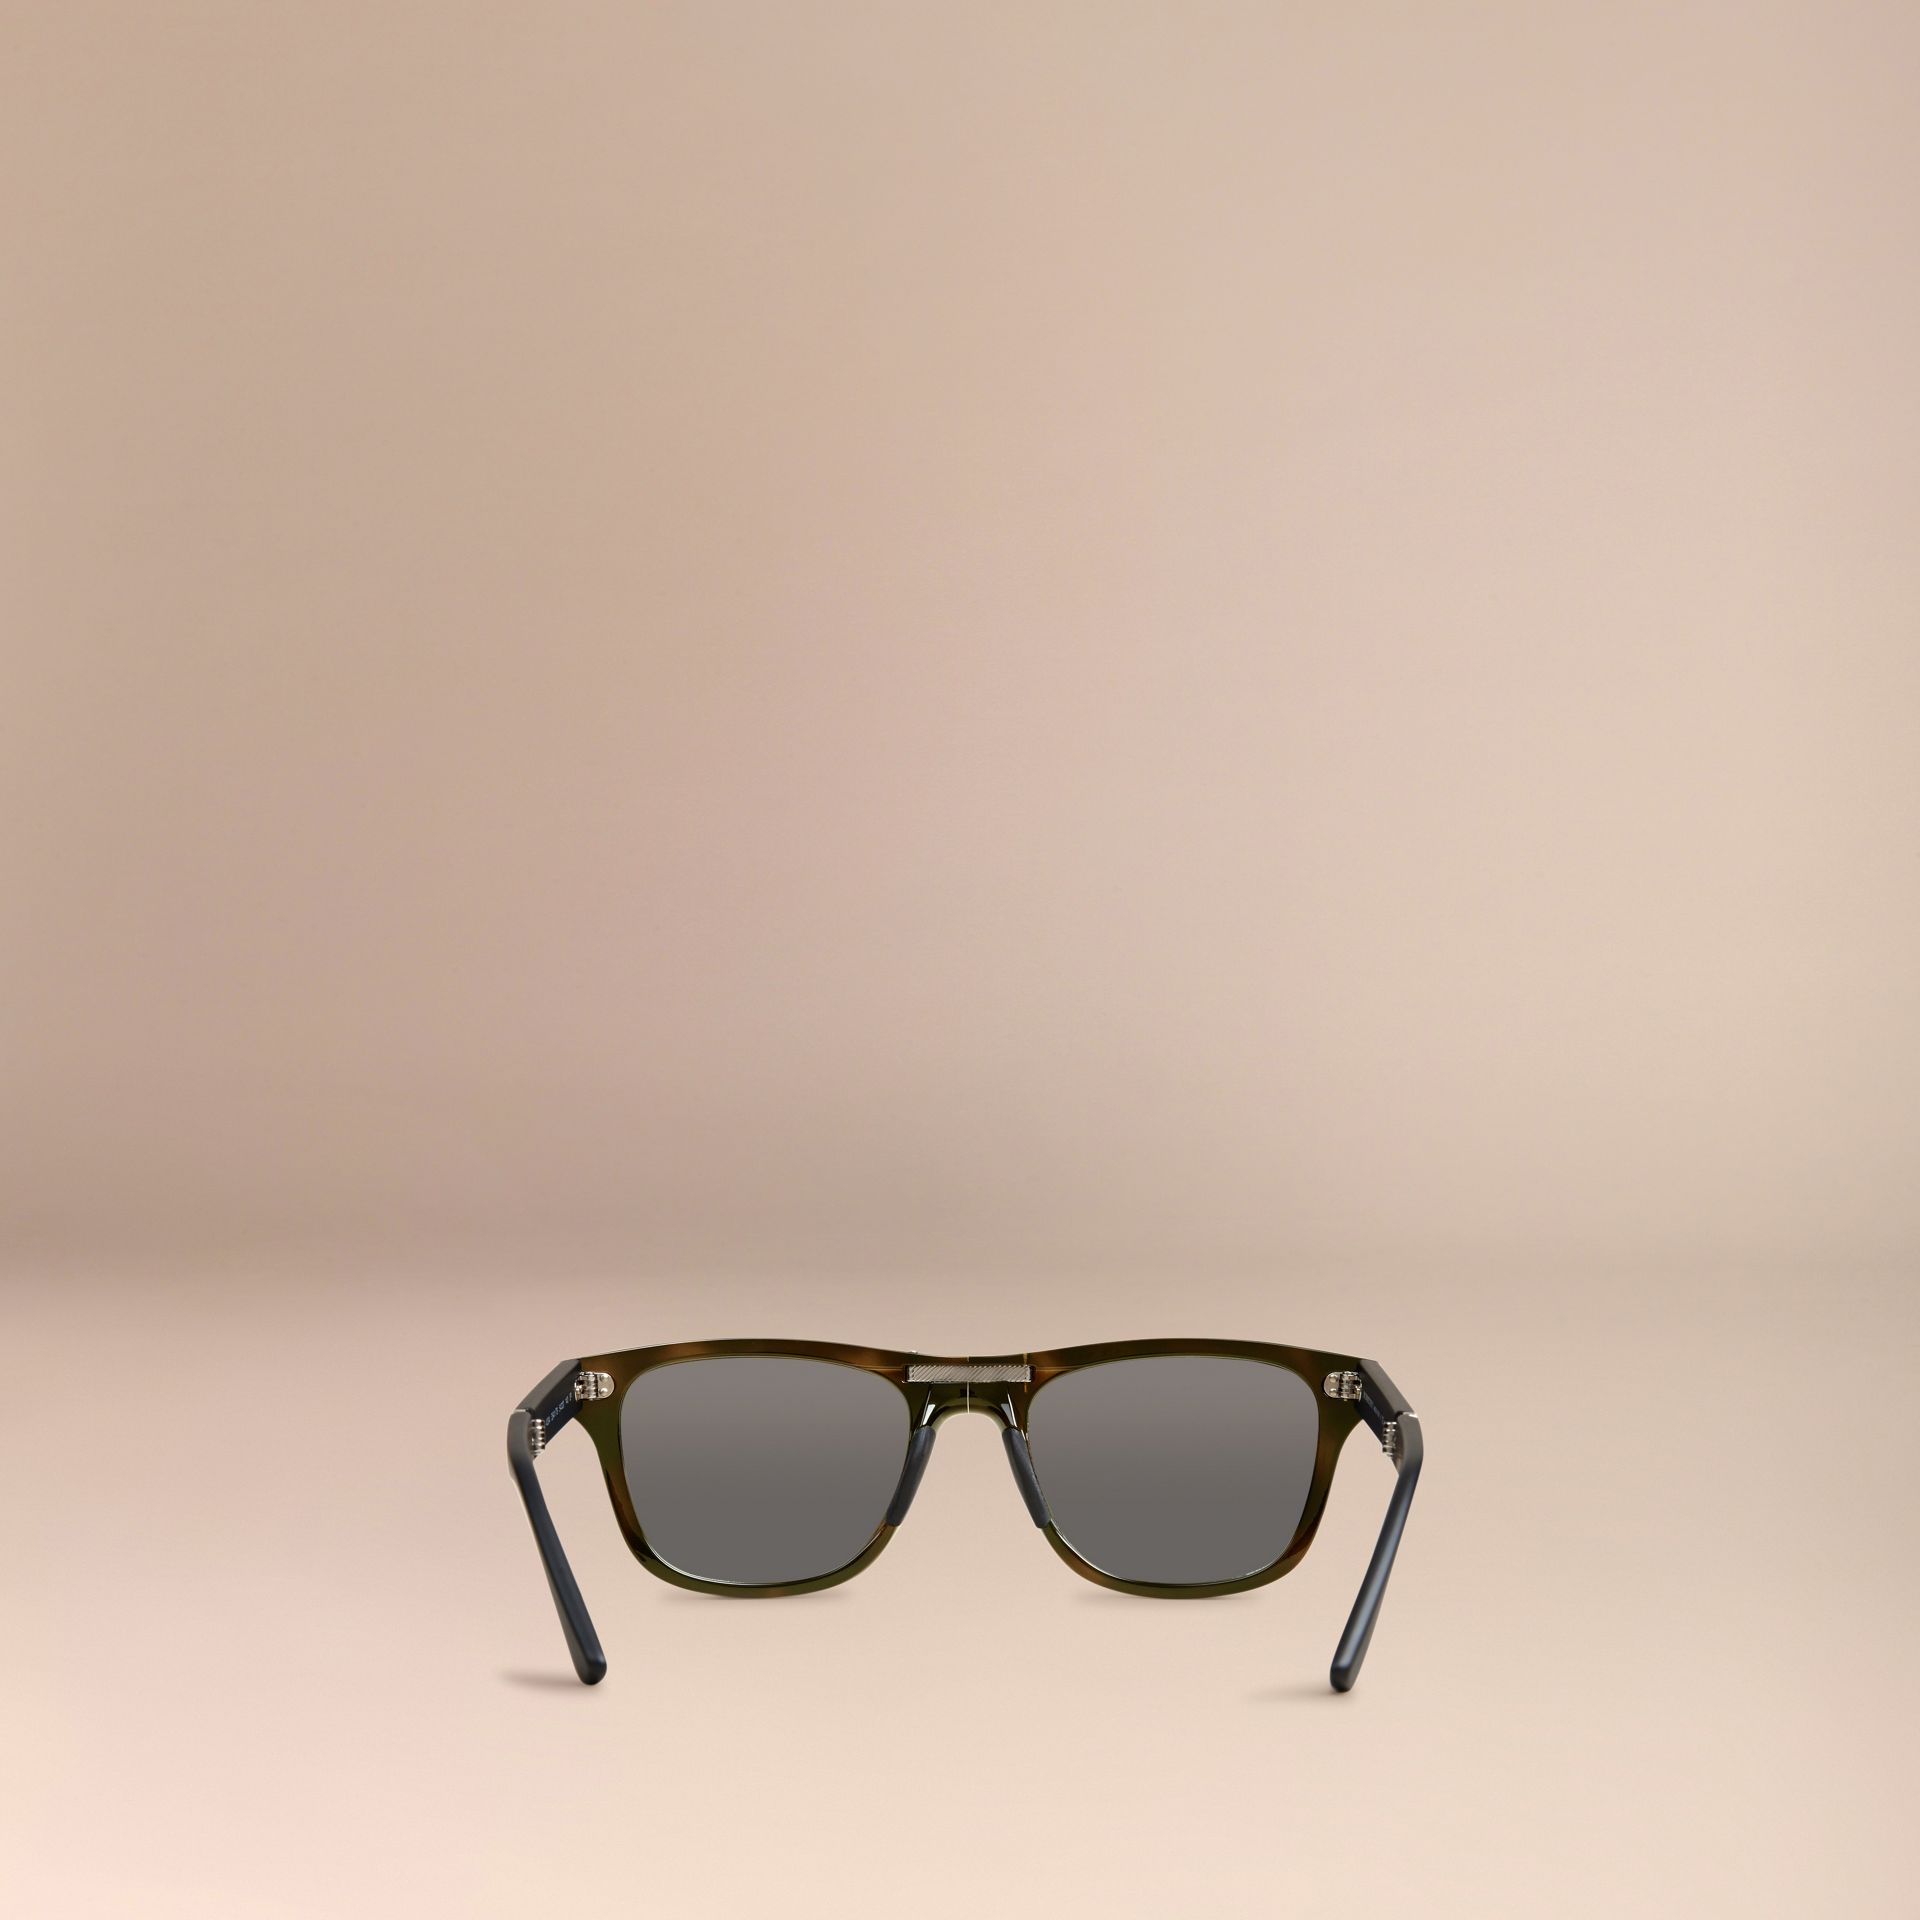 Folding Rectangular Frame Polarised Sunglasses in Grey - Men | Burberry Singapore - gallery image 3